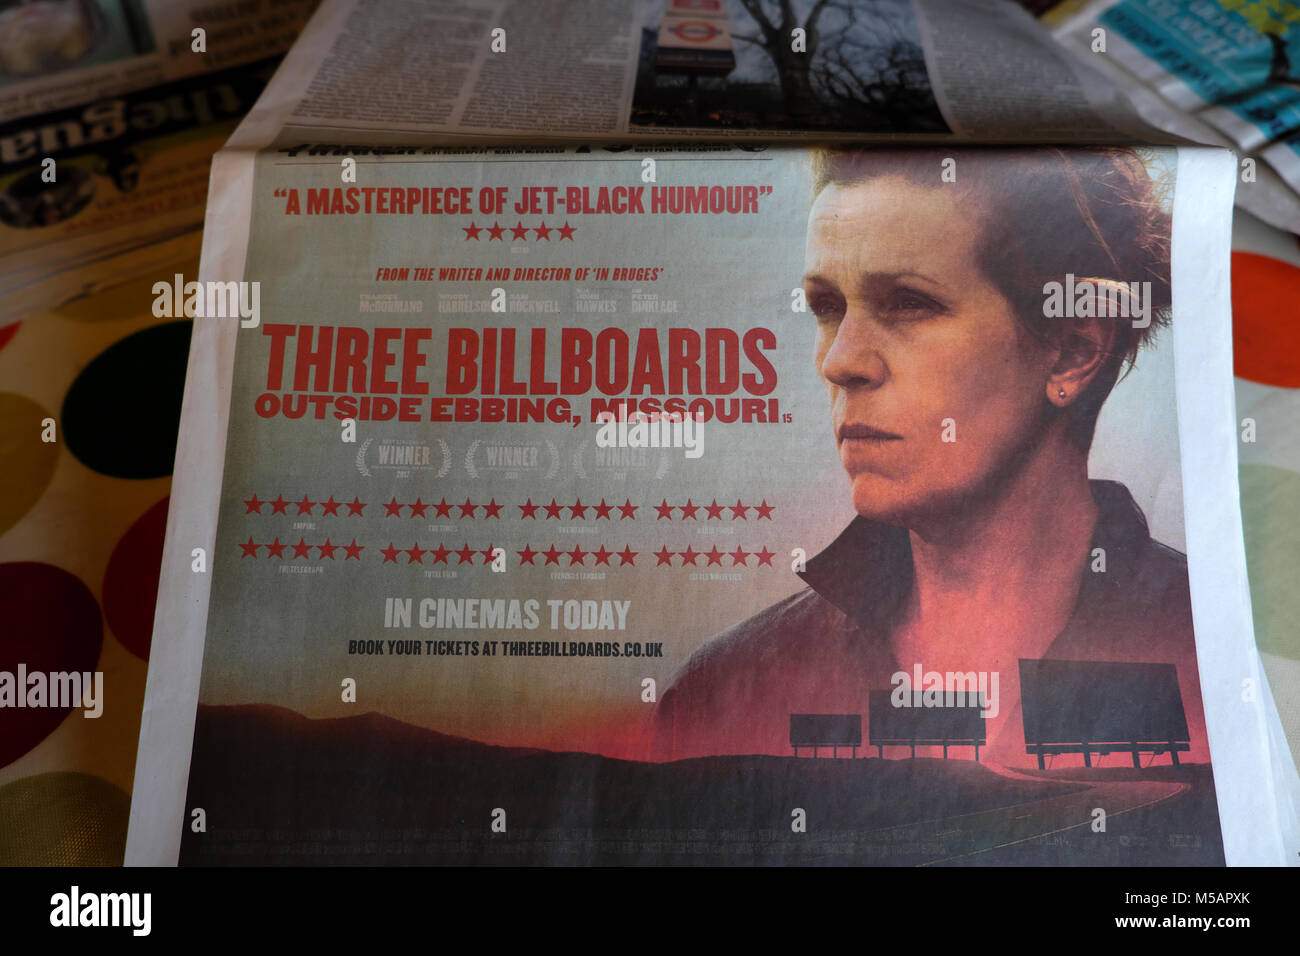 Three Billboards Outside Ebbing, Missouri Oscar Award Winning movie advert in a British newspaper with Hollywood - Stock Image